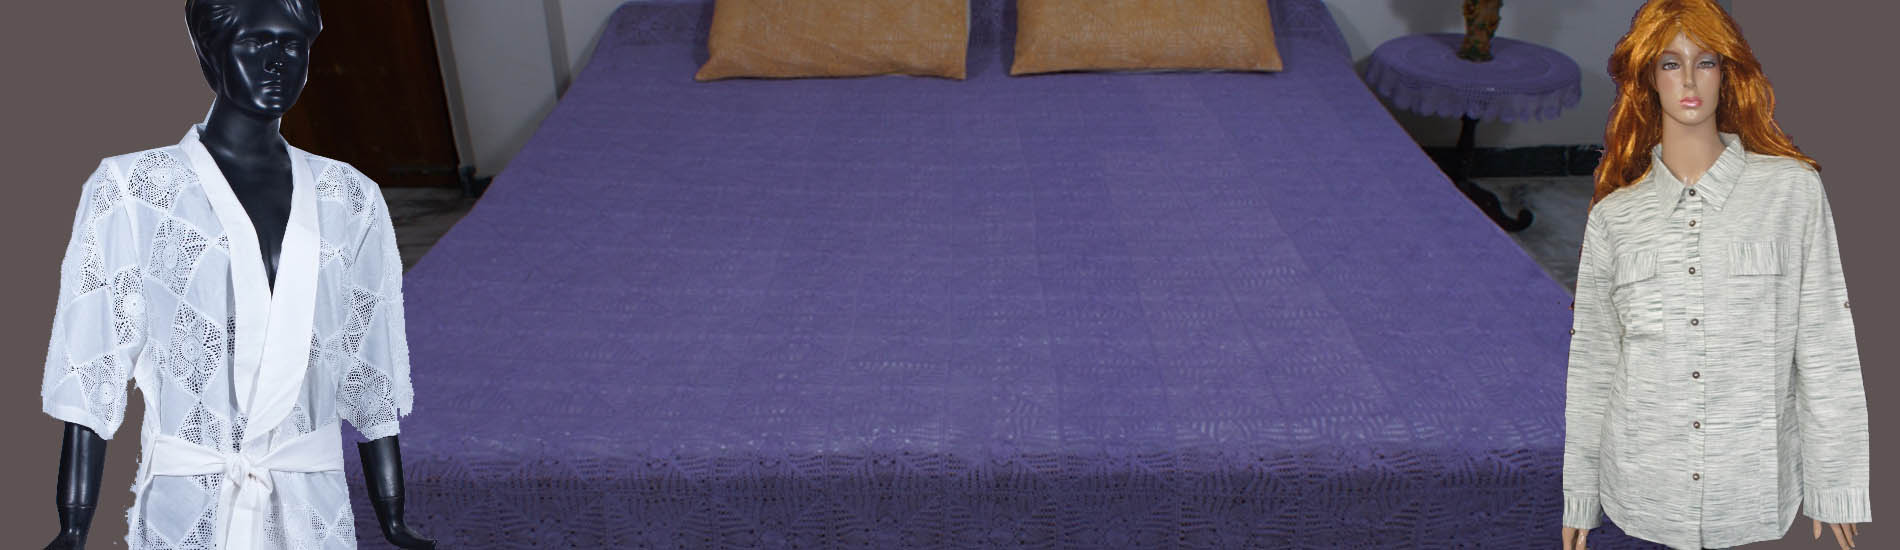 Assorted Tops, Bed Spreads